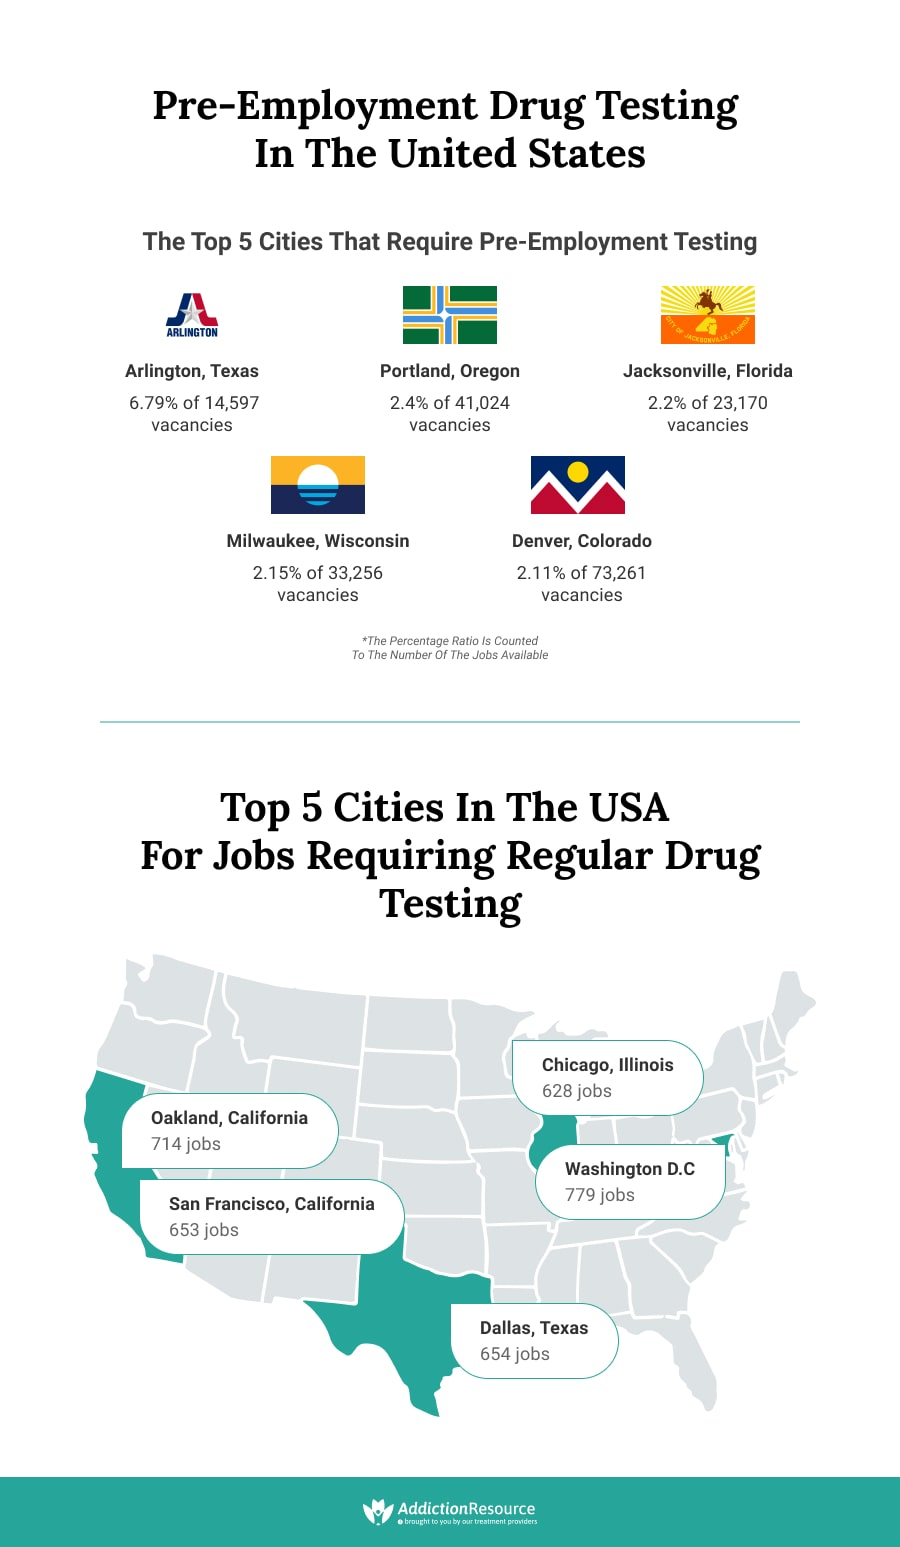 Pre-Employment Drug Testing in the United States